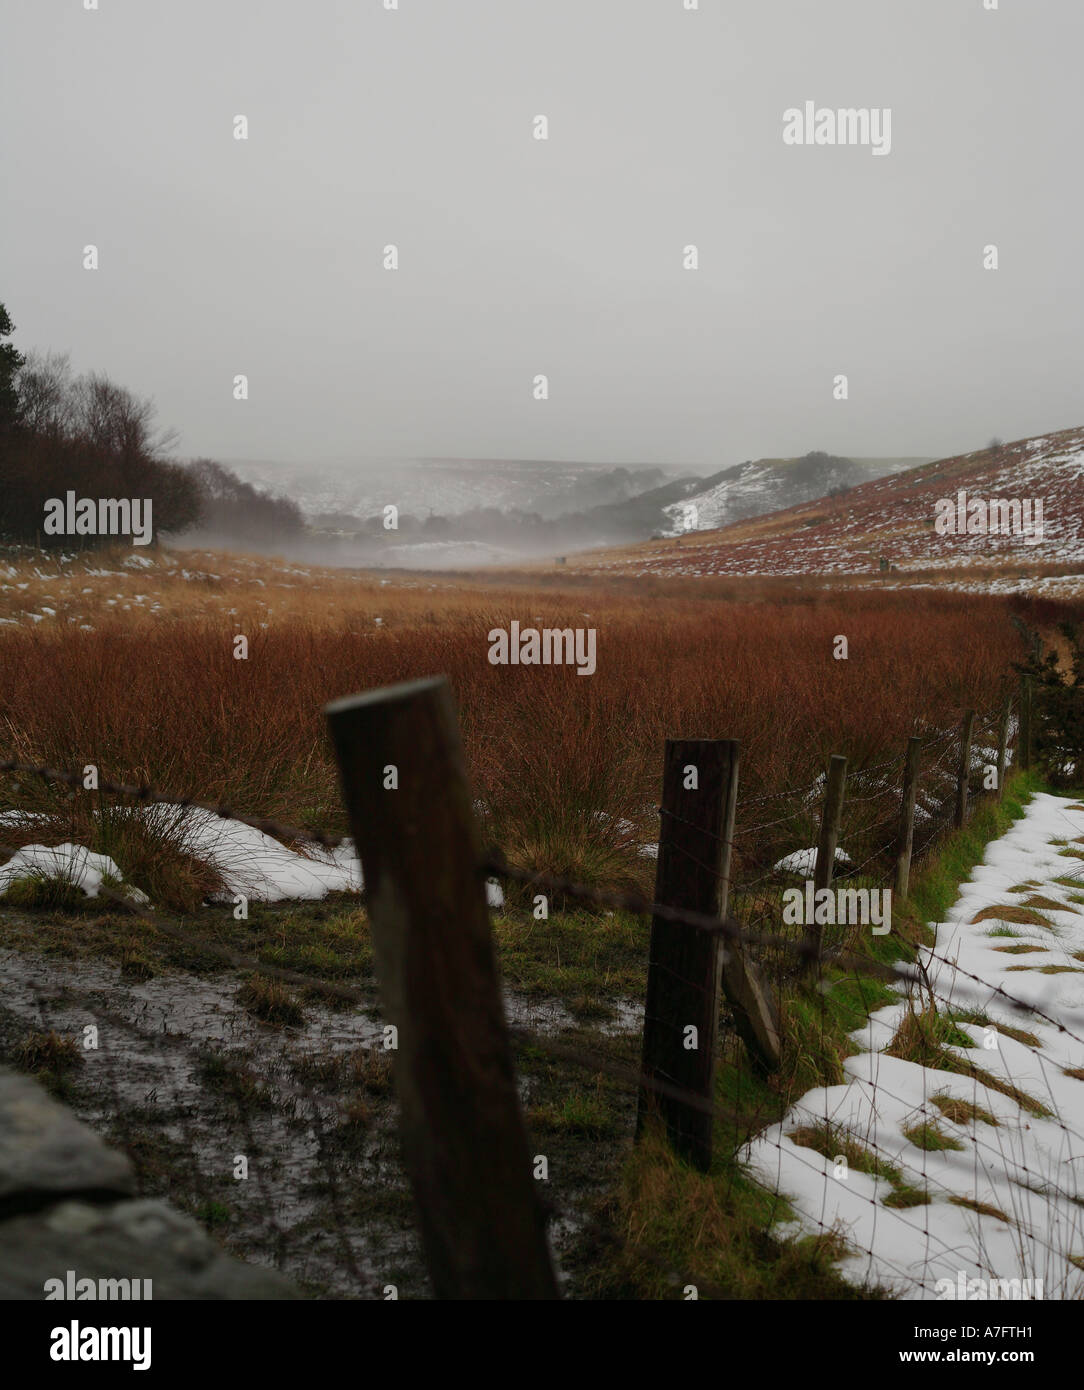 North Yorkshire Moors shrouded in mist - Stock Image